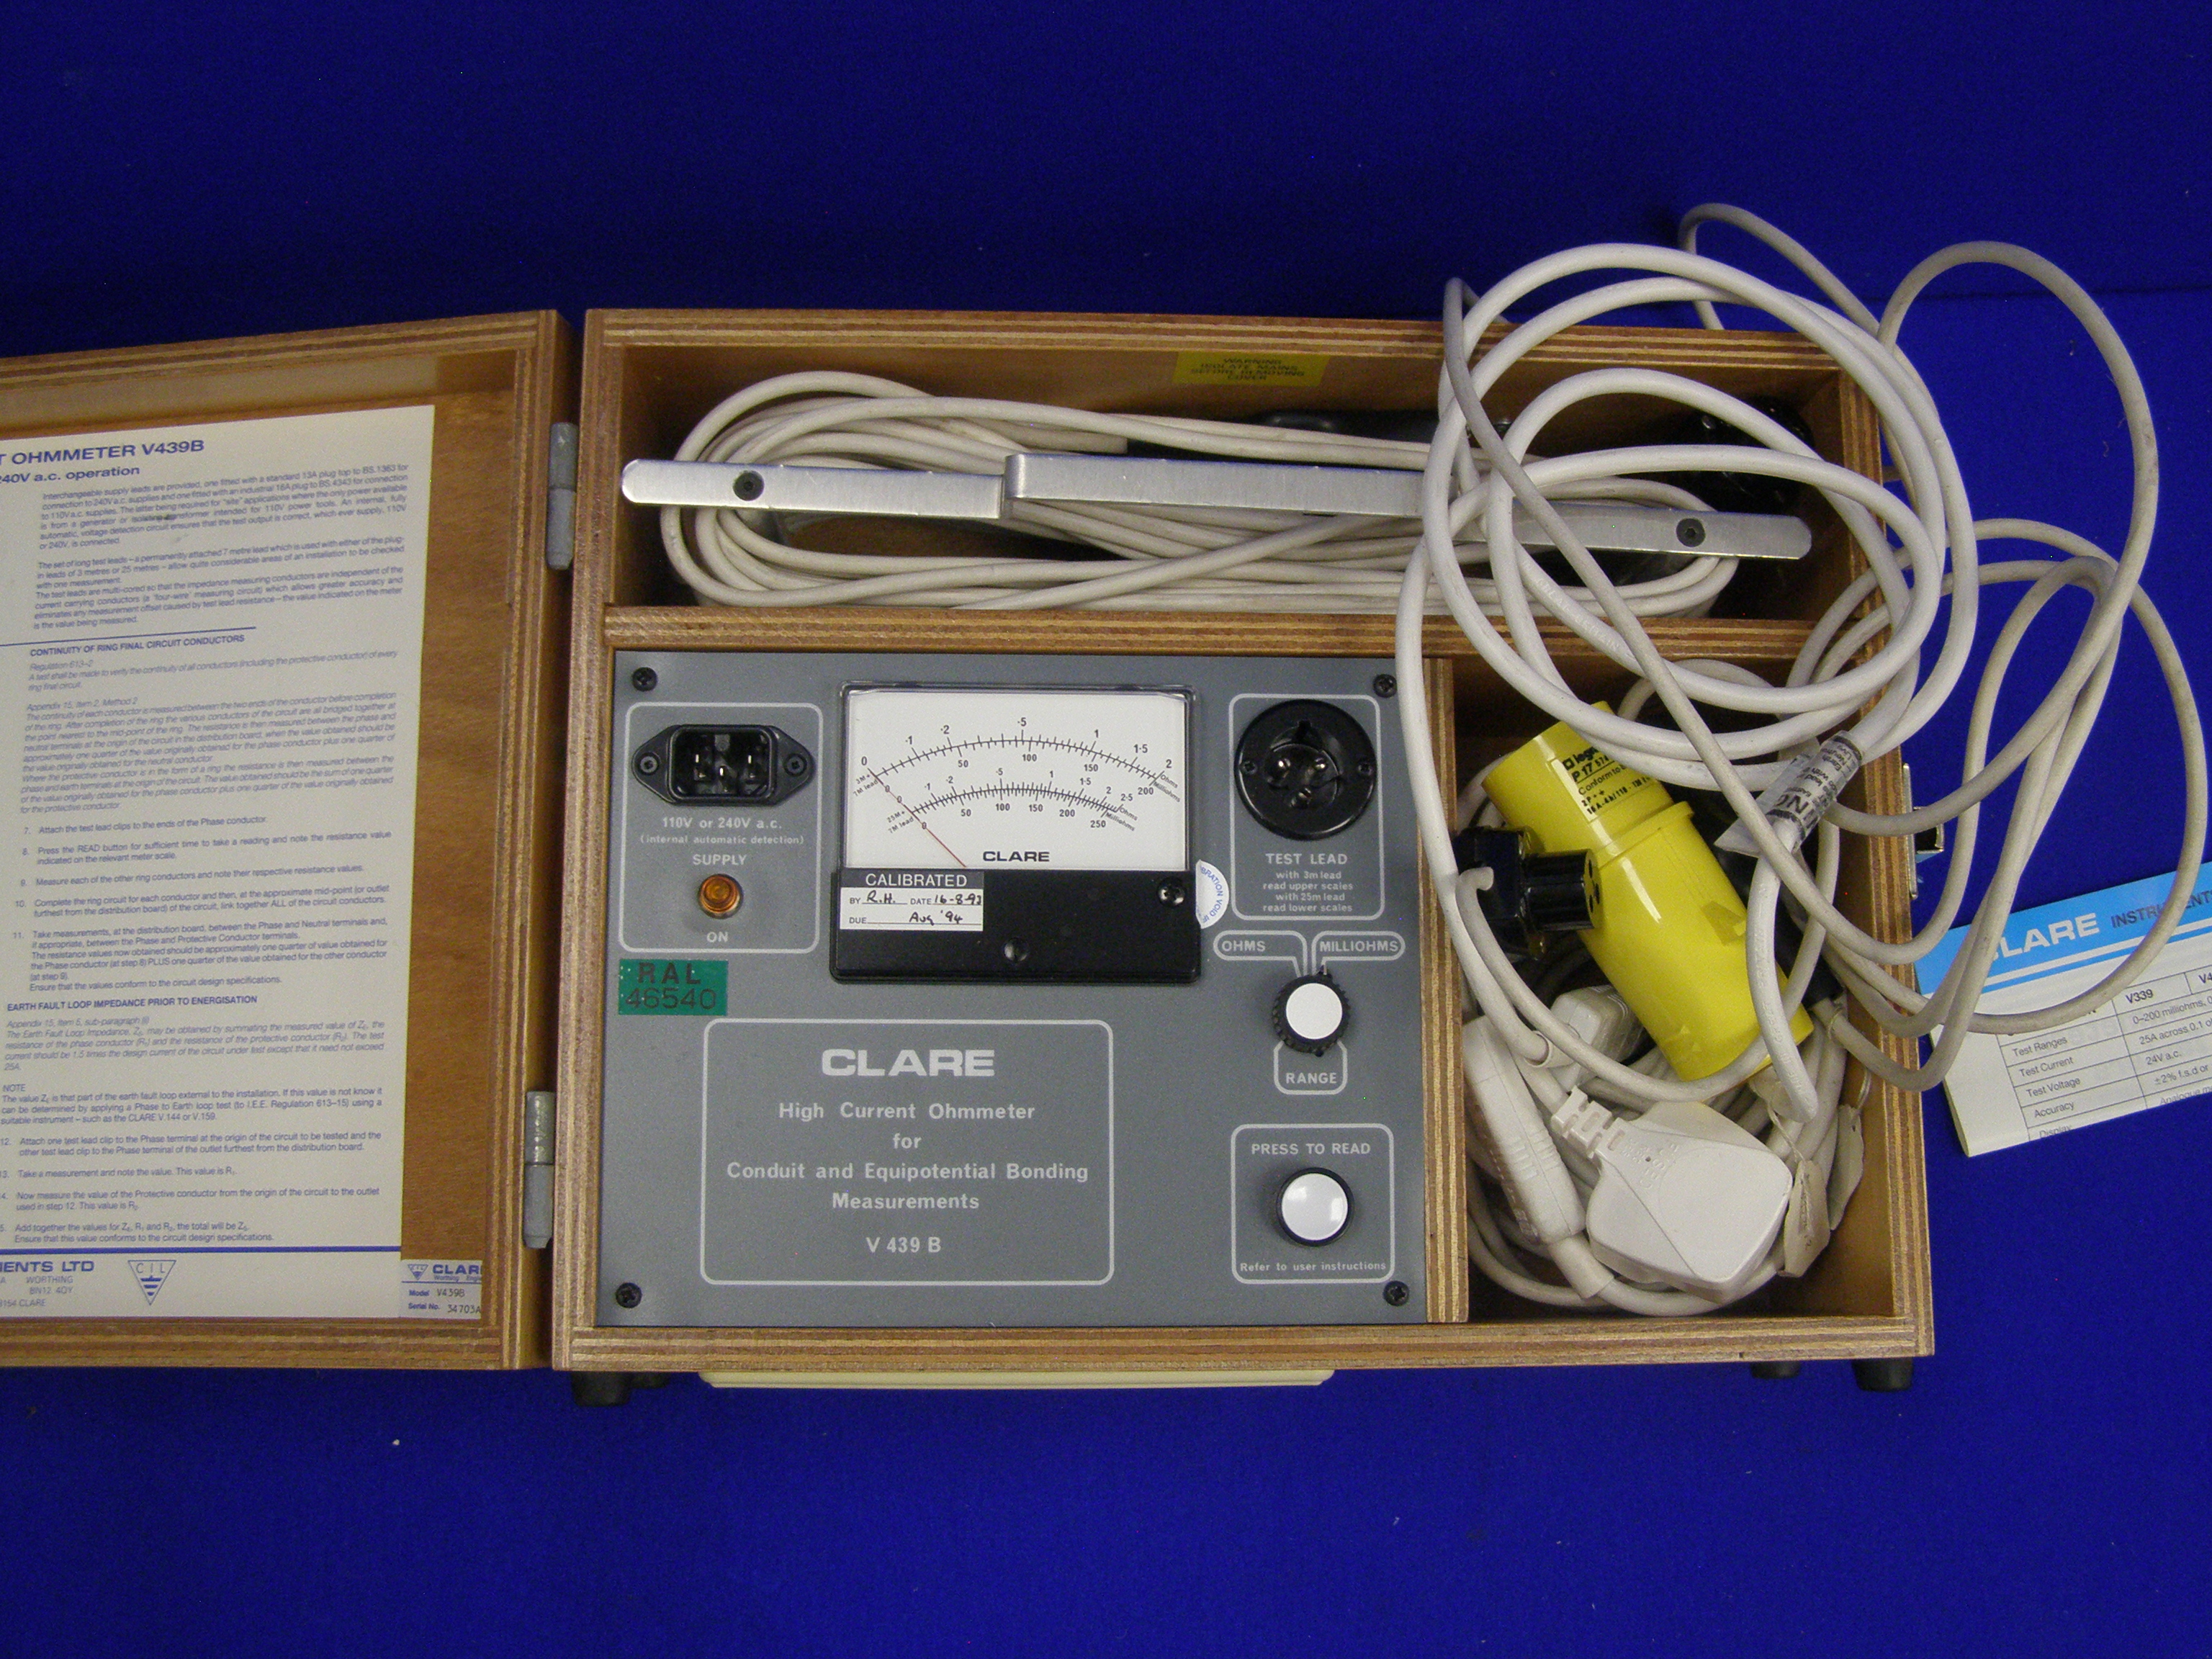 CLARE high current ohmmeter.JPG